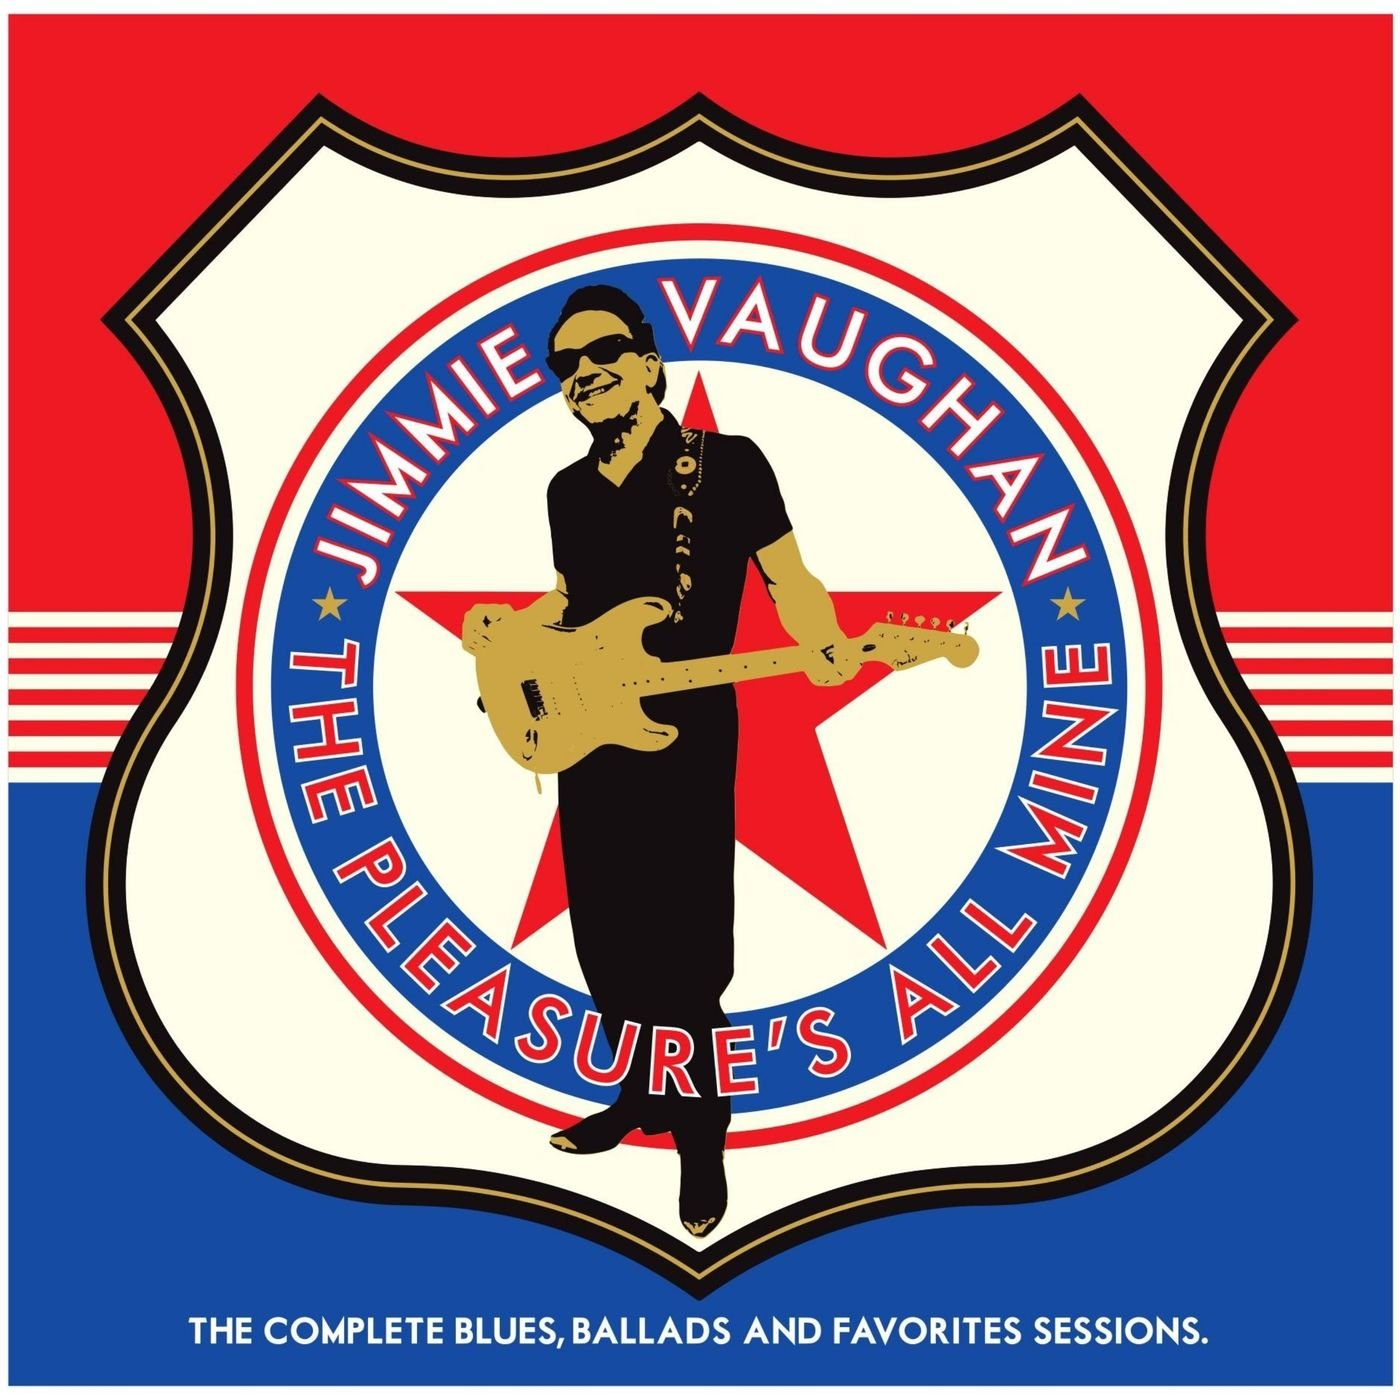 Jimmie Vaughan - The Pleasures All Mine The Complete Blues Ballads And Favorites Sessions (2020) 2CD